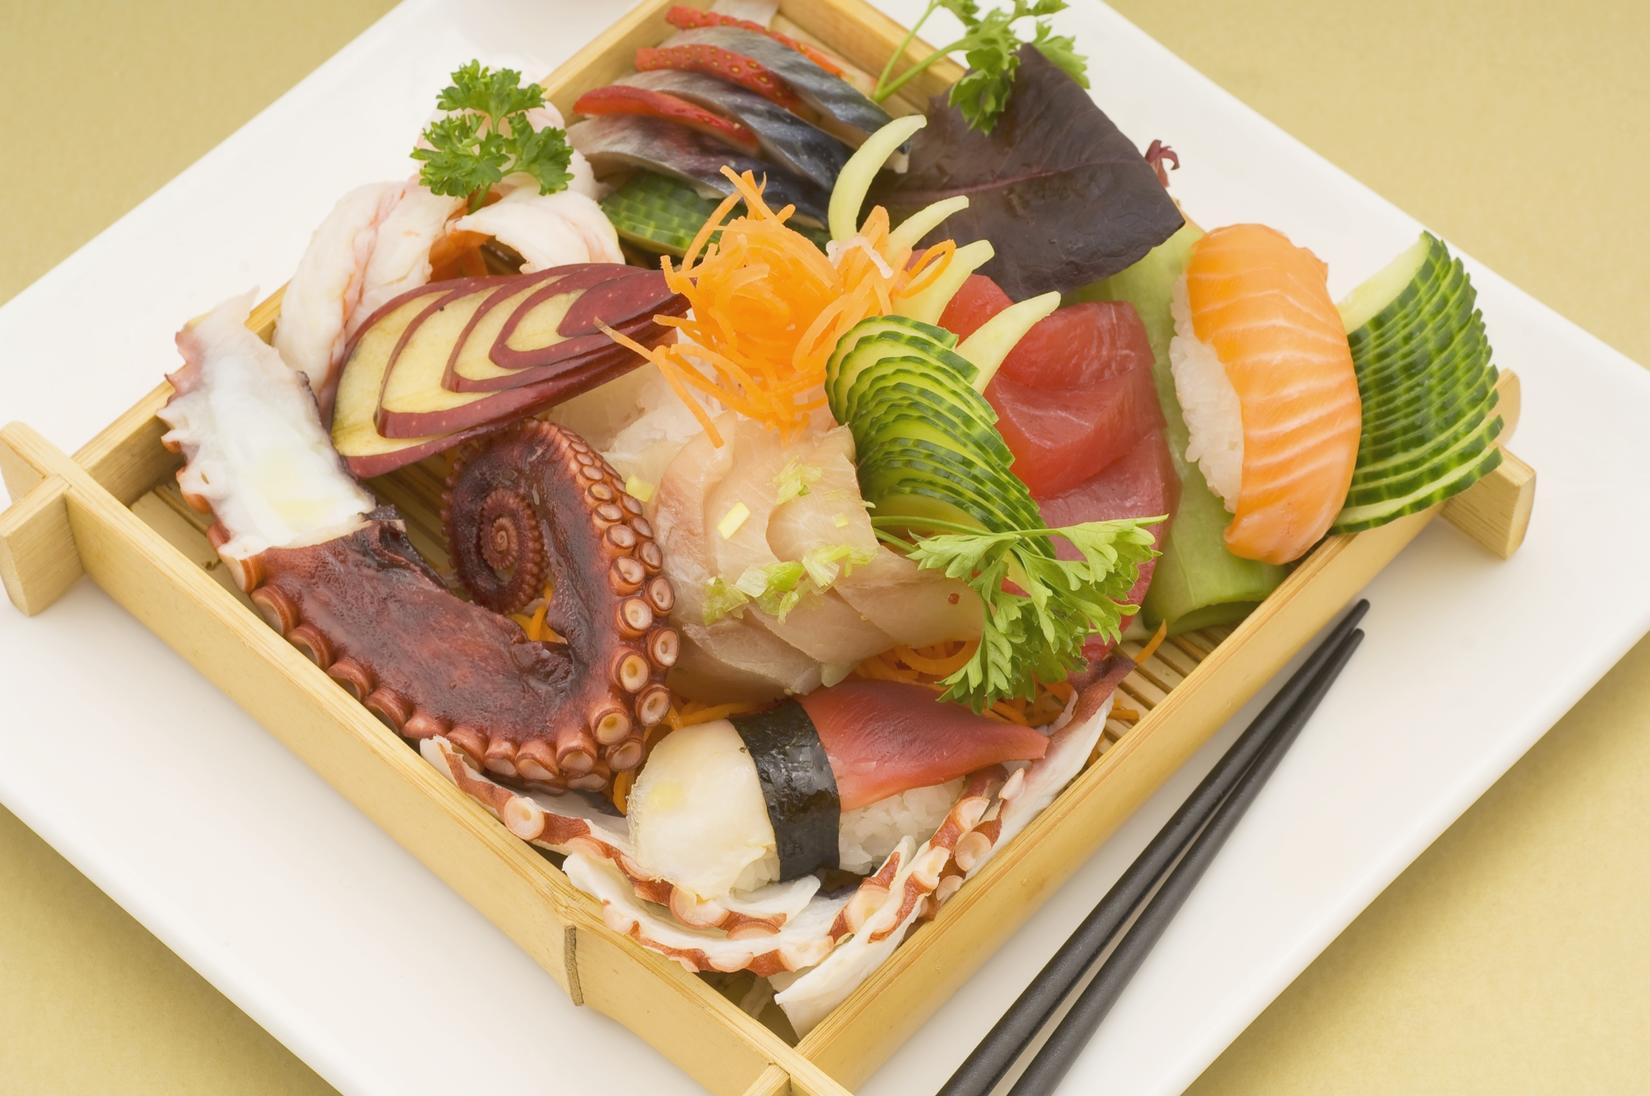 Legal seafood coupons discounts